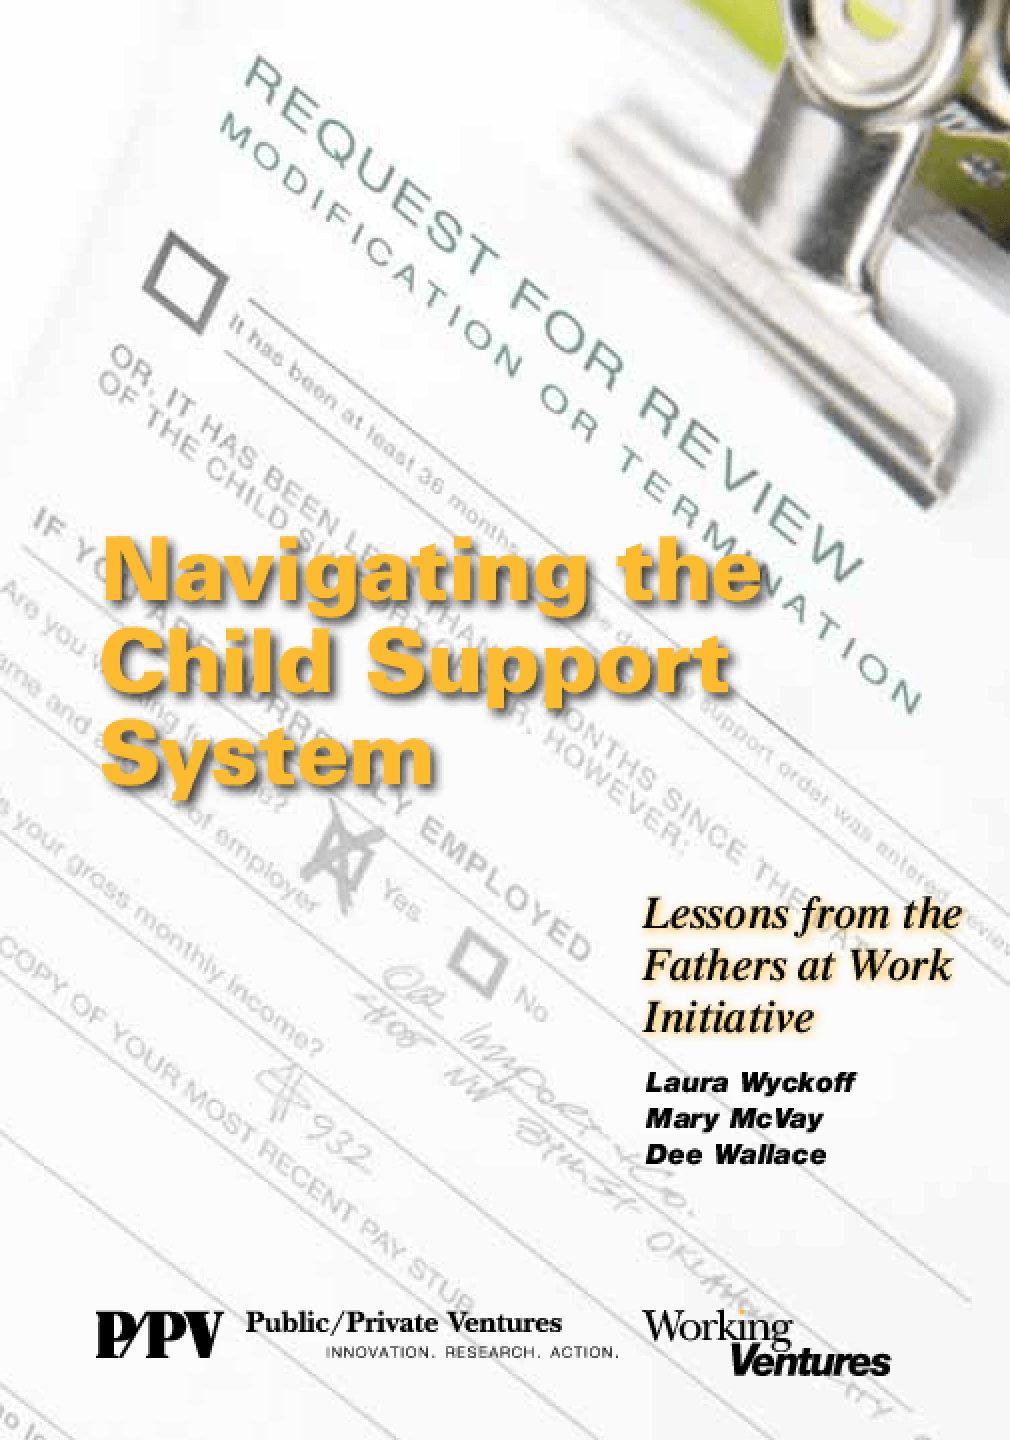 Navigating the Child Support System: Lessons from the Fathers at Work Initiative